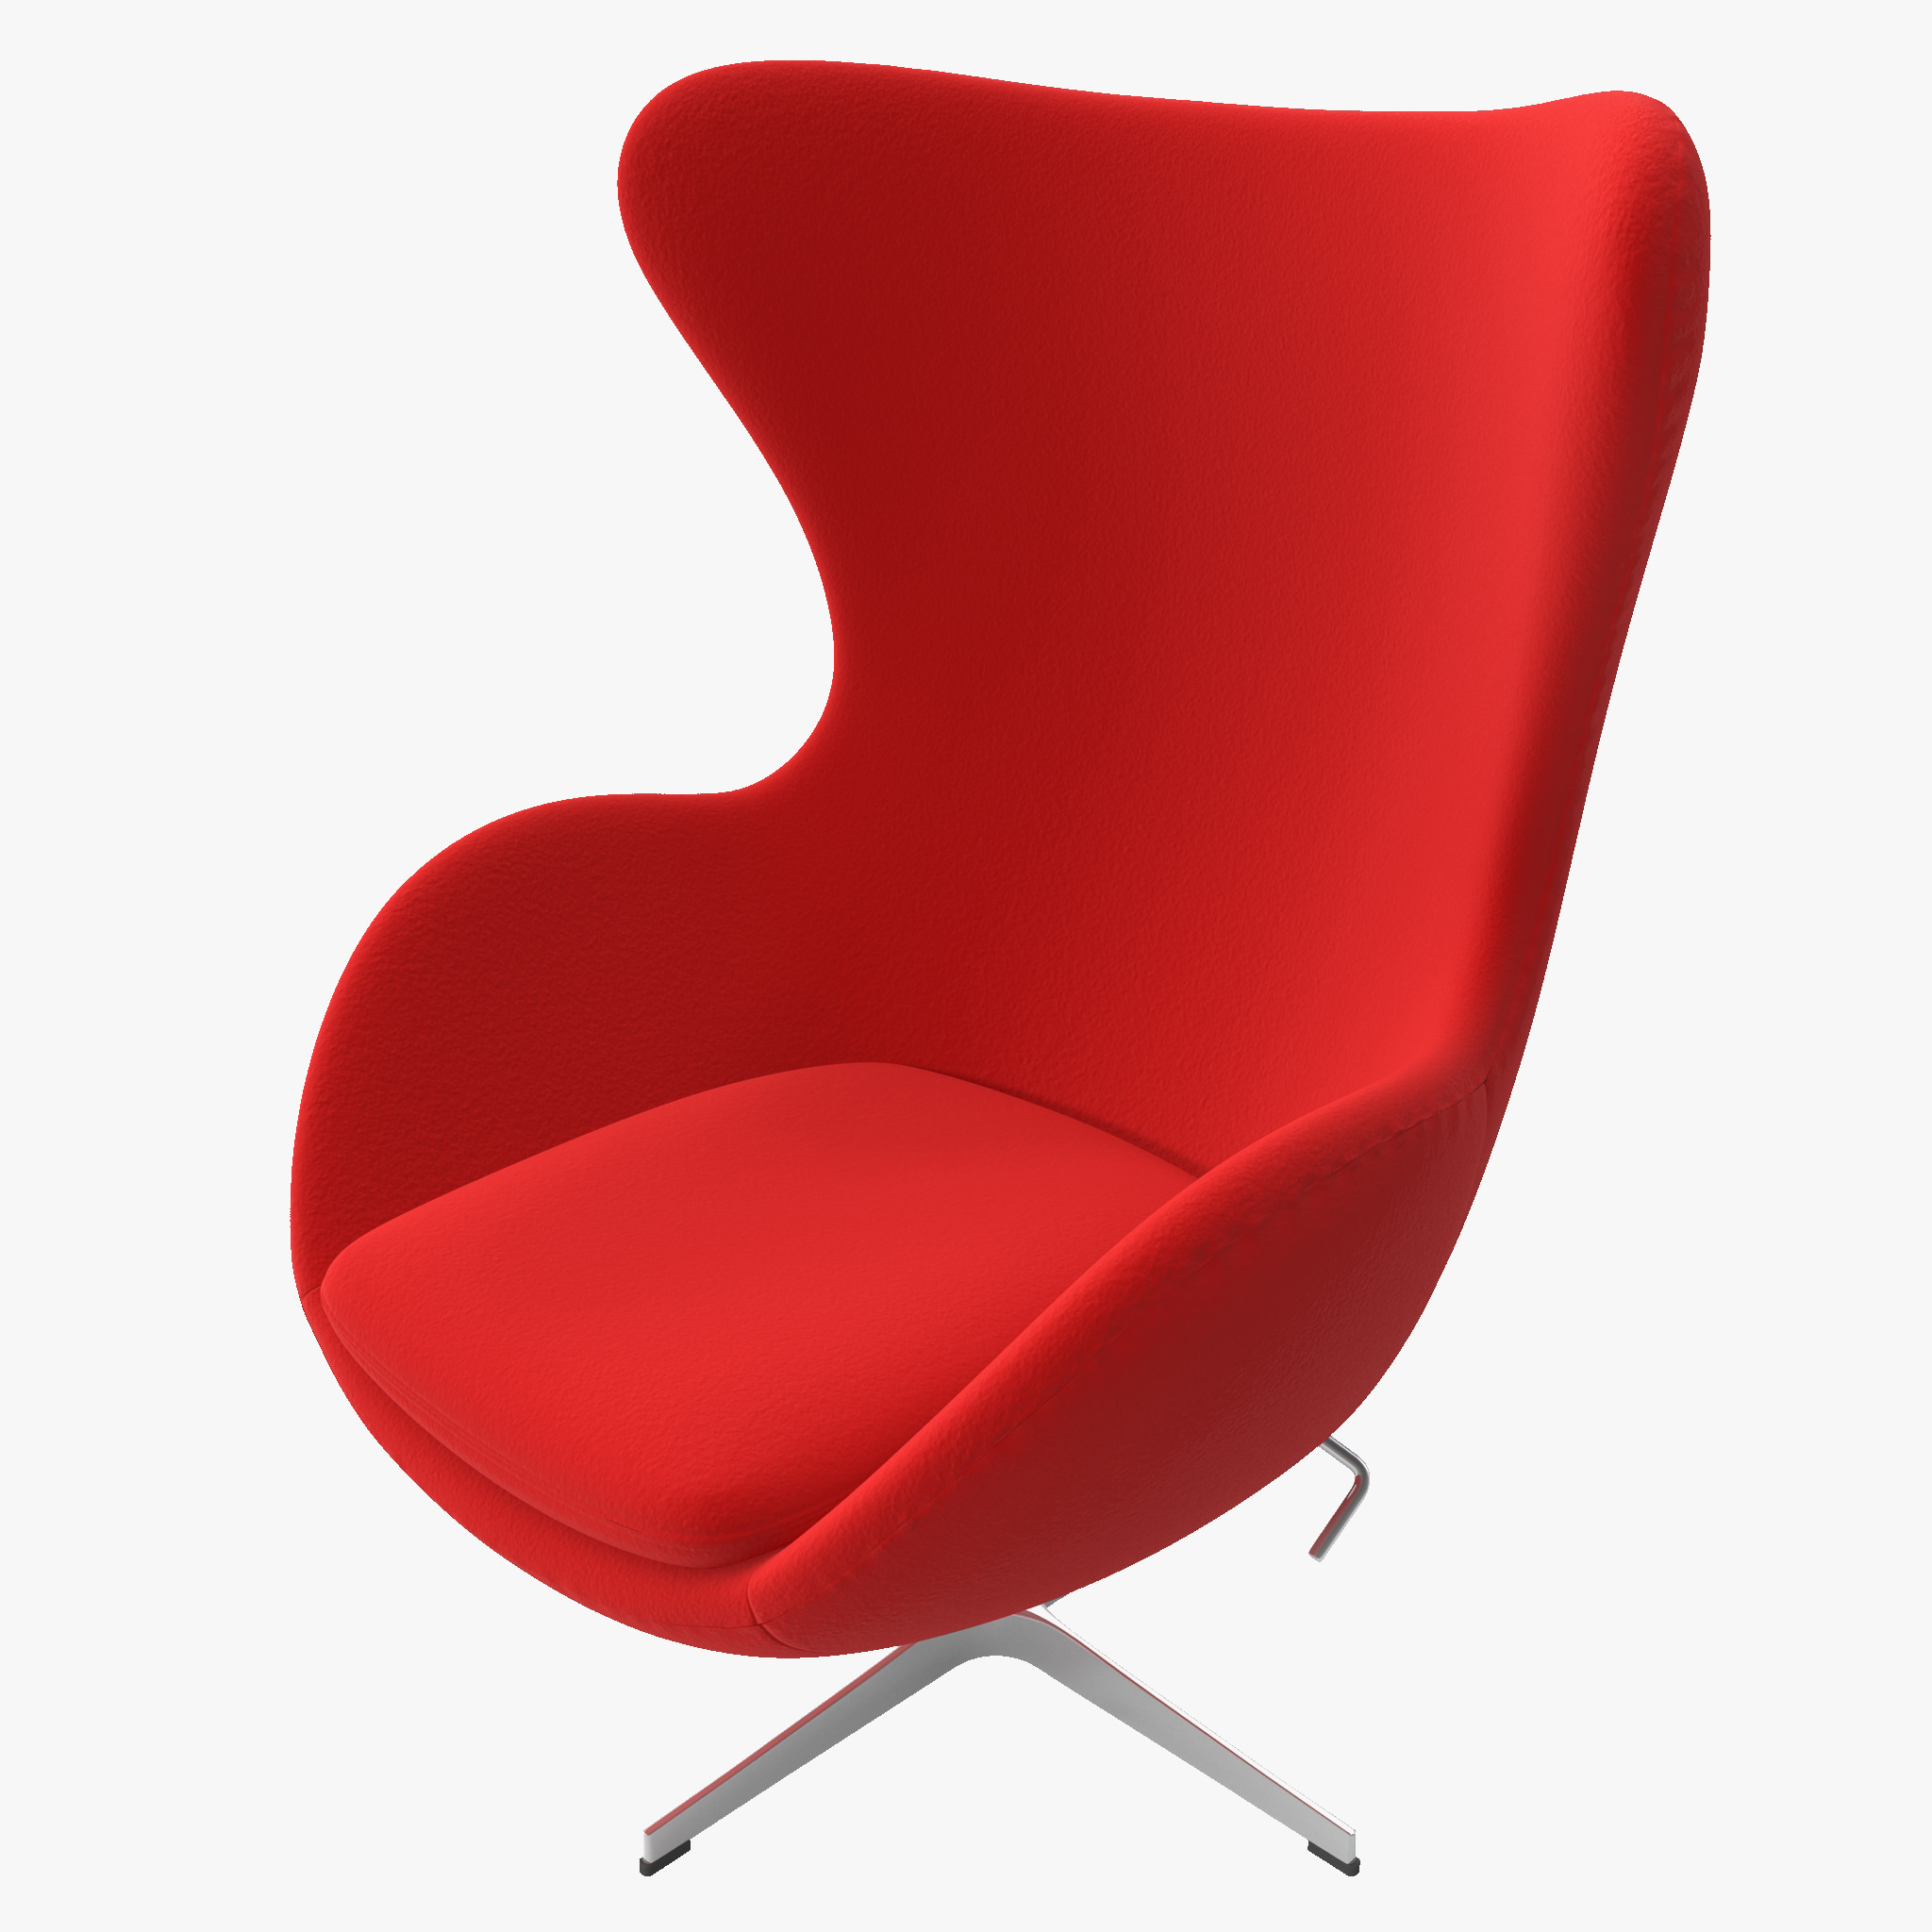 Affordable Egg Chair Egg Pod Chair Perth